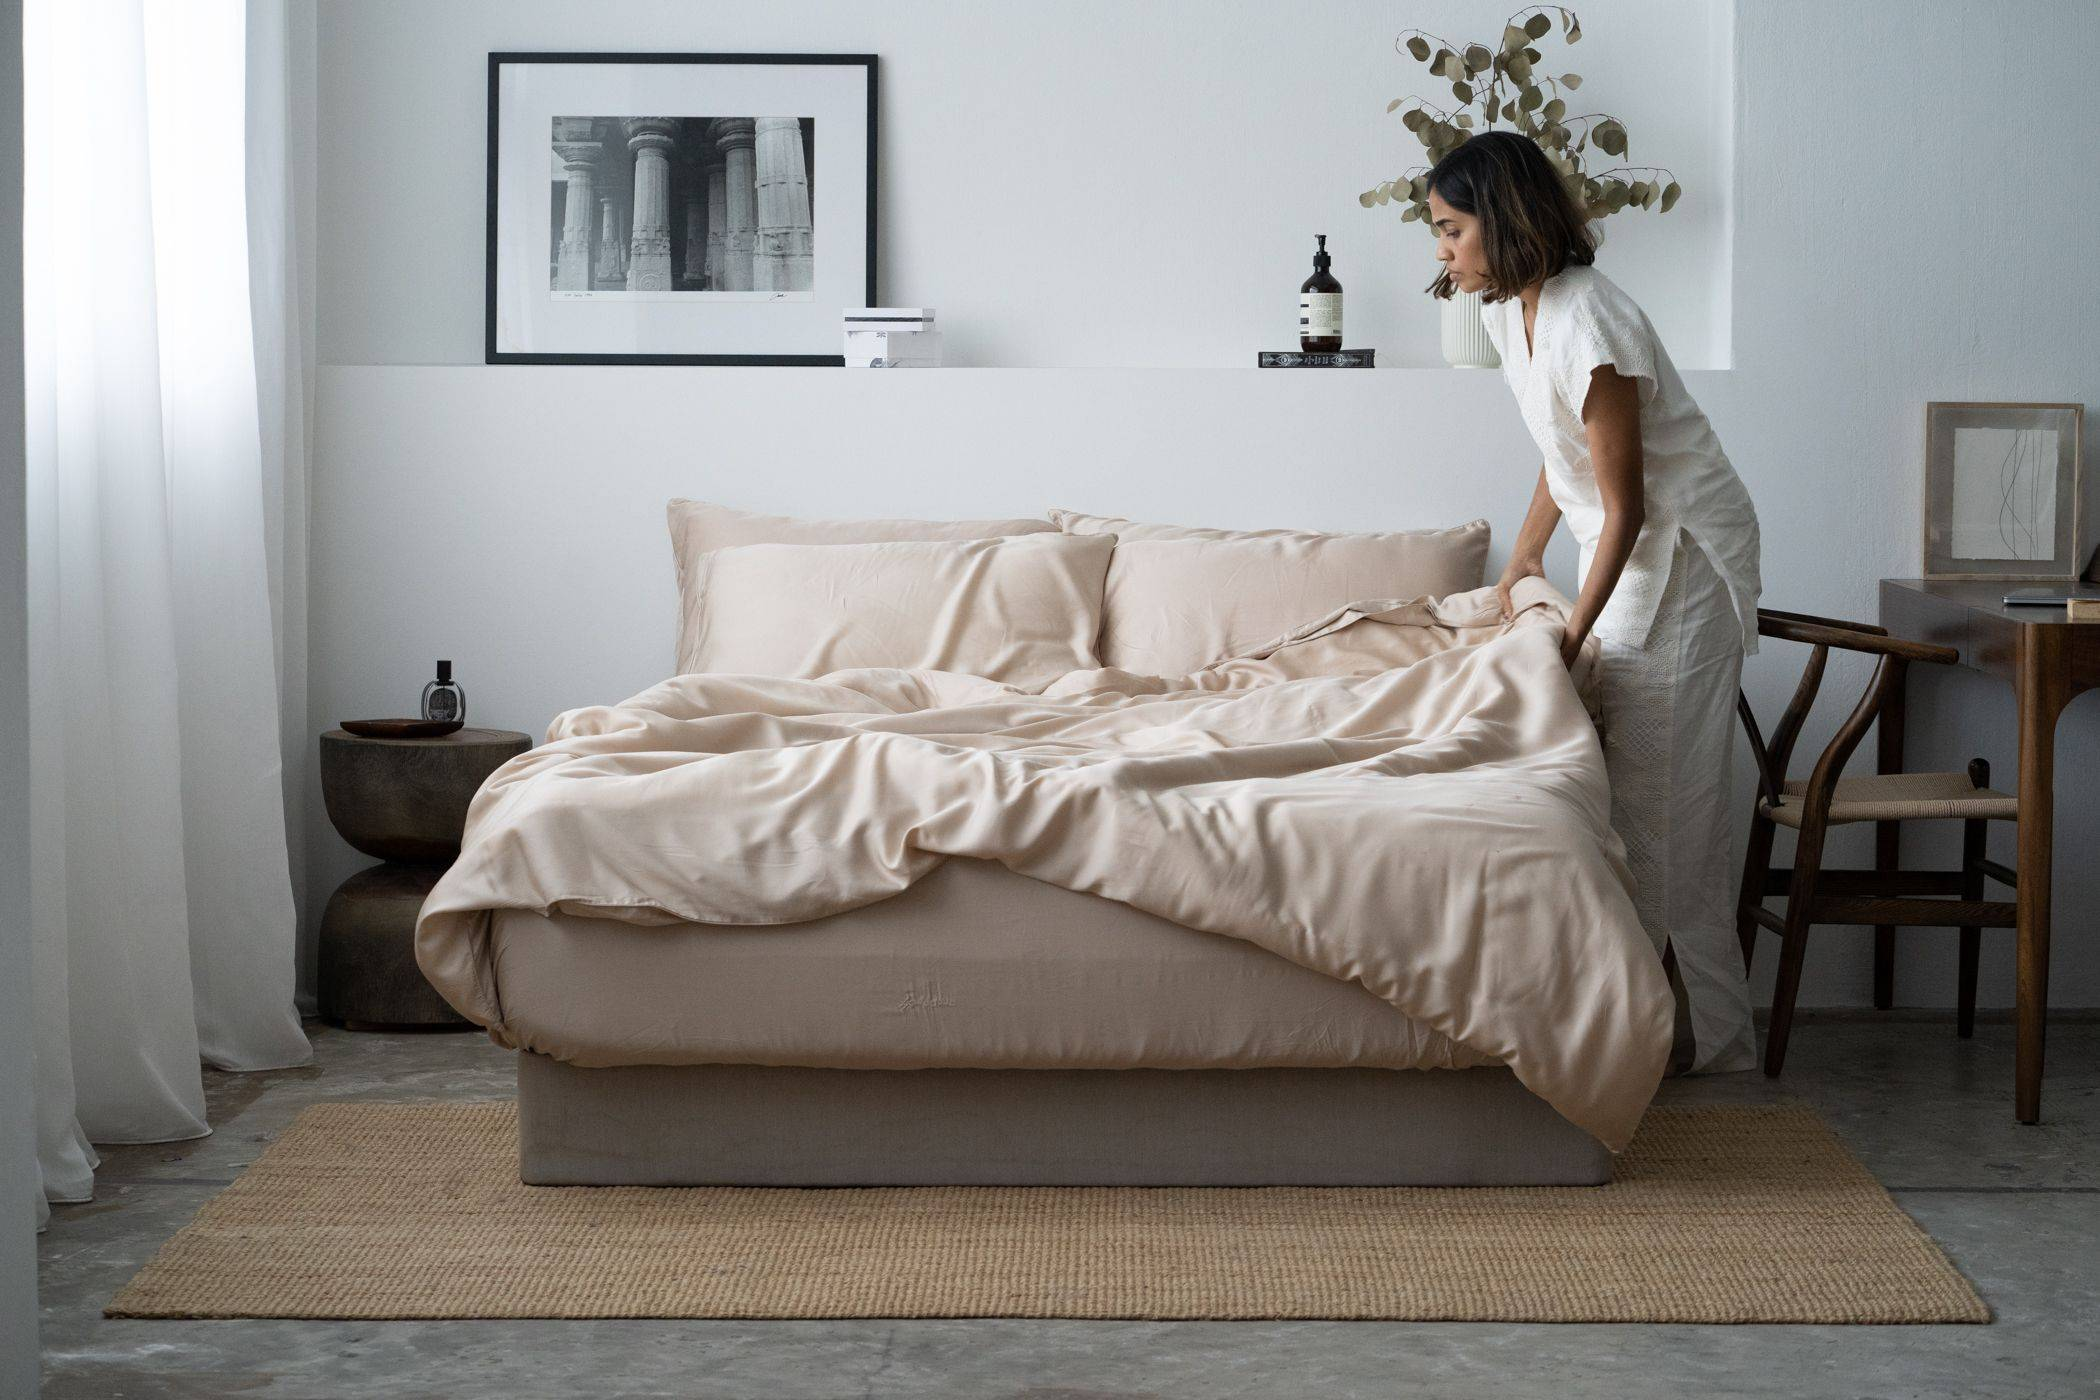 Woman making the bed, featuring Weavve's Lyocell Deluxe Set in Sand Taupe